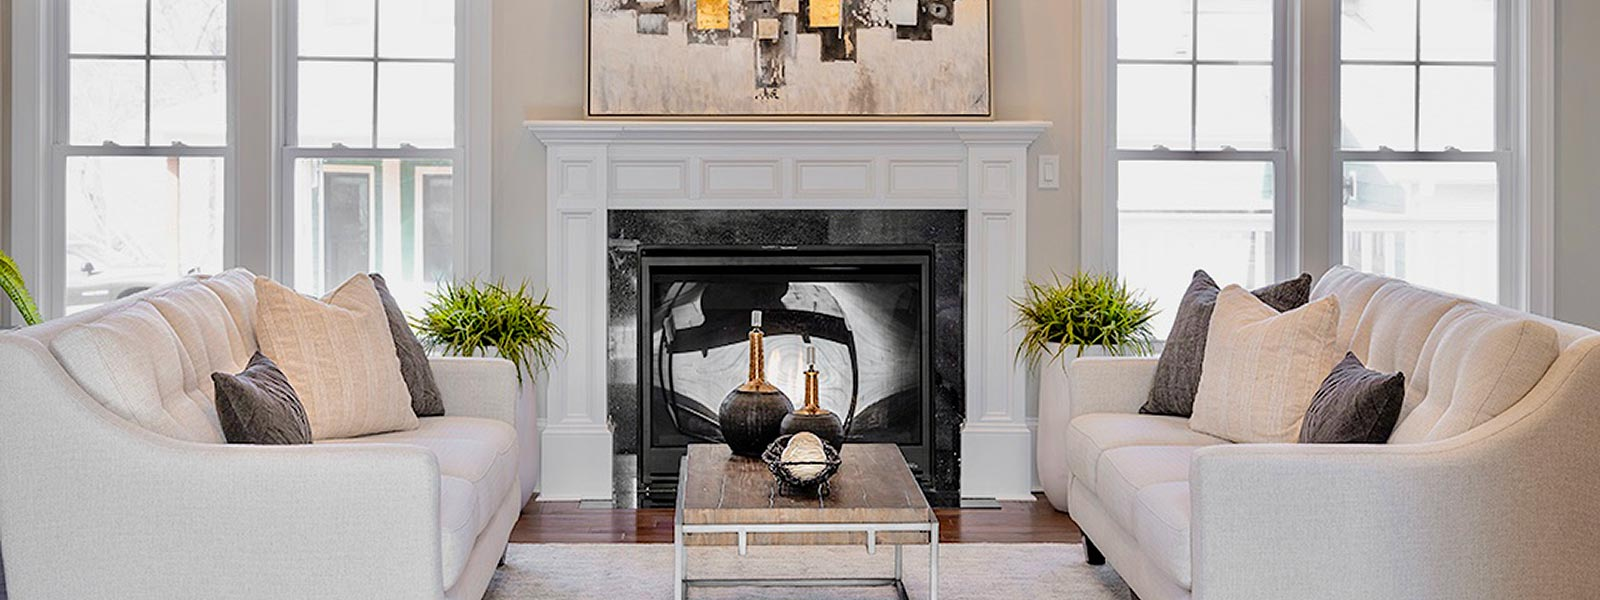 Luxury Home Staging in Great Falls VA - Leslie Anderson interiors